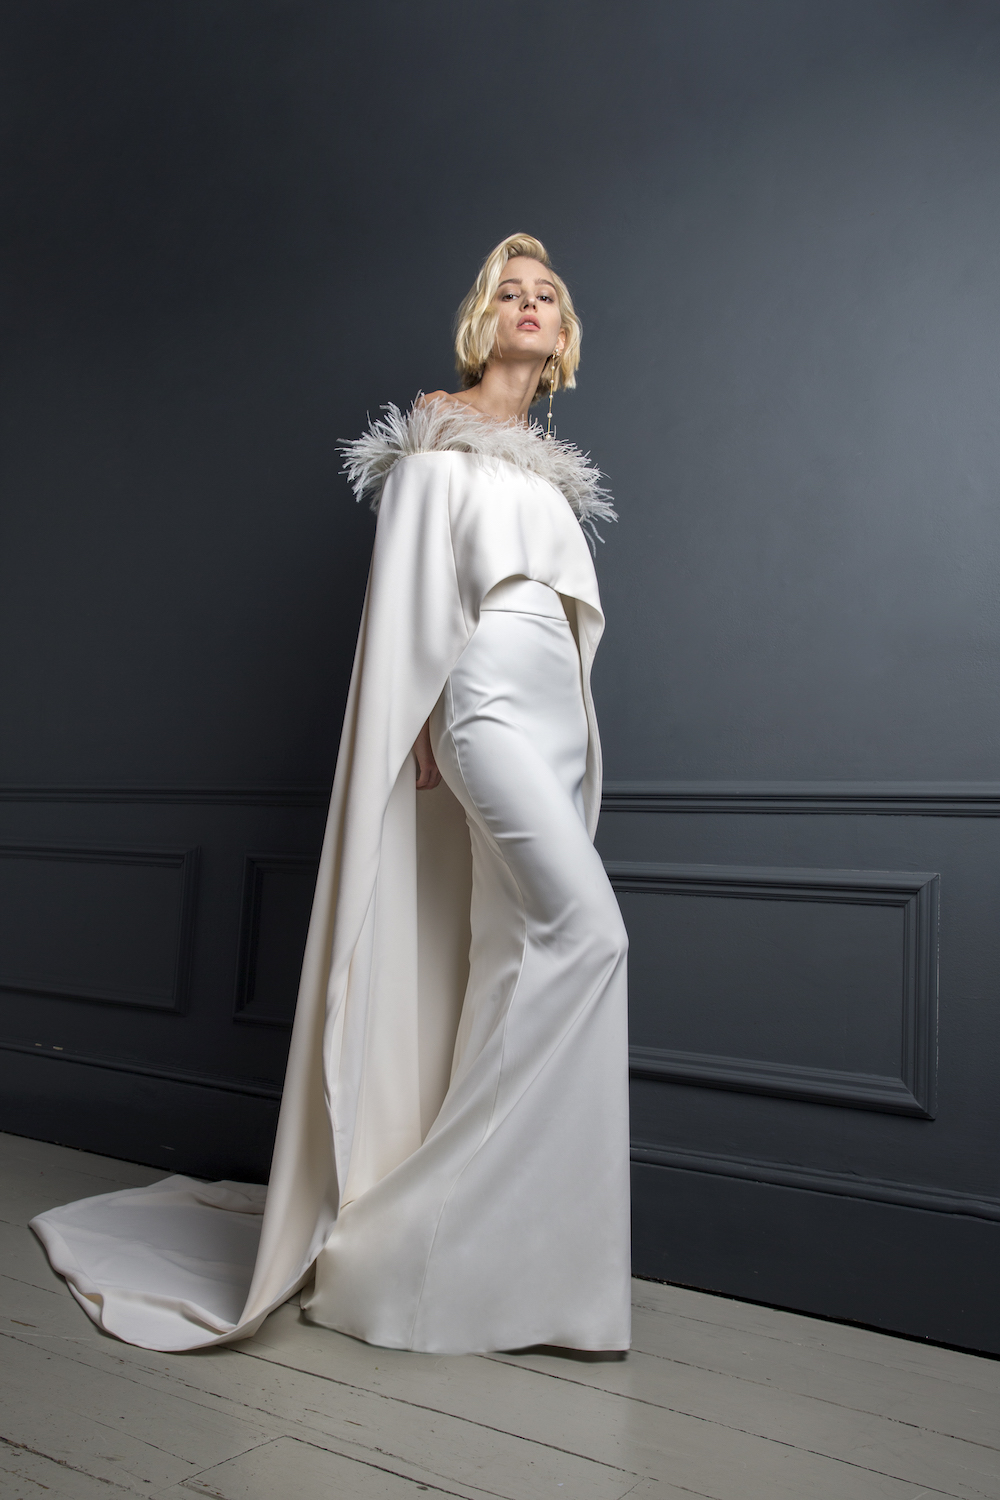 JOSEPH CAPE & VICTOR SLIP | WEDDING DRESS BY HALFPENNY LONDON